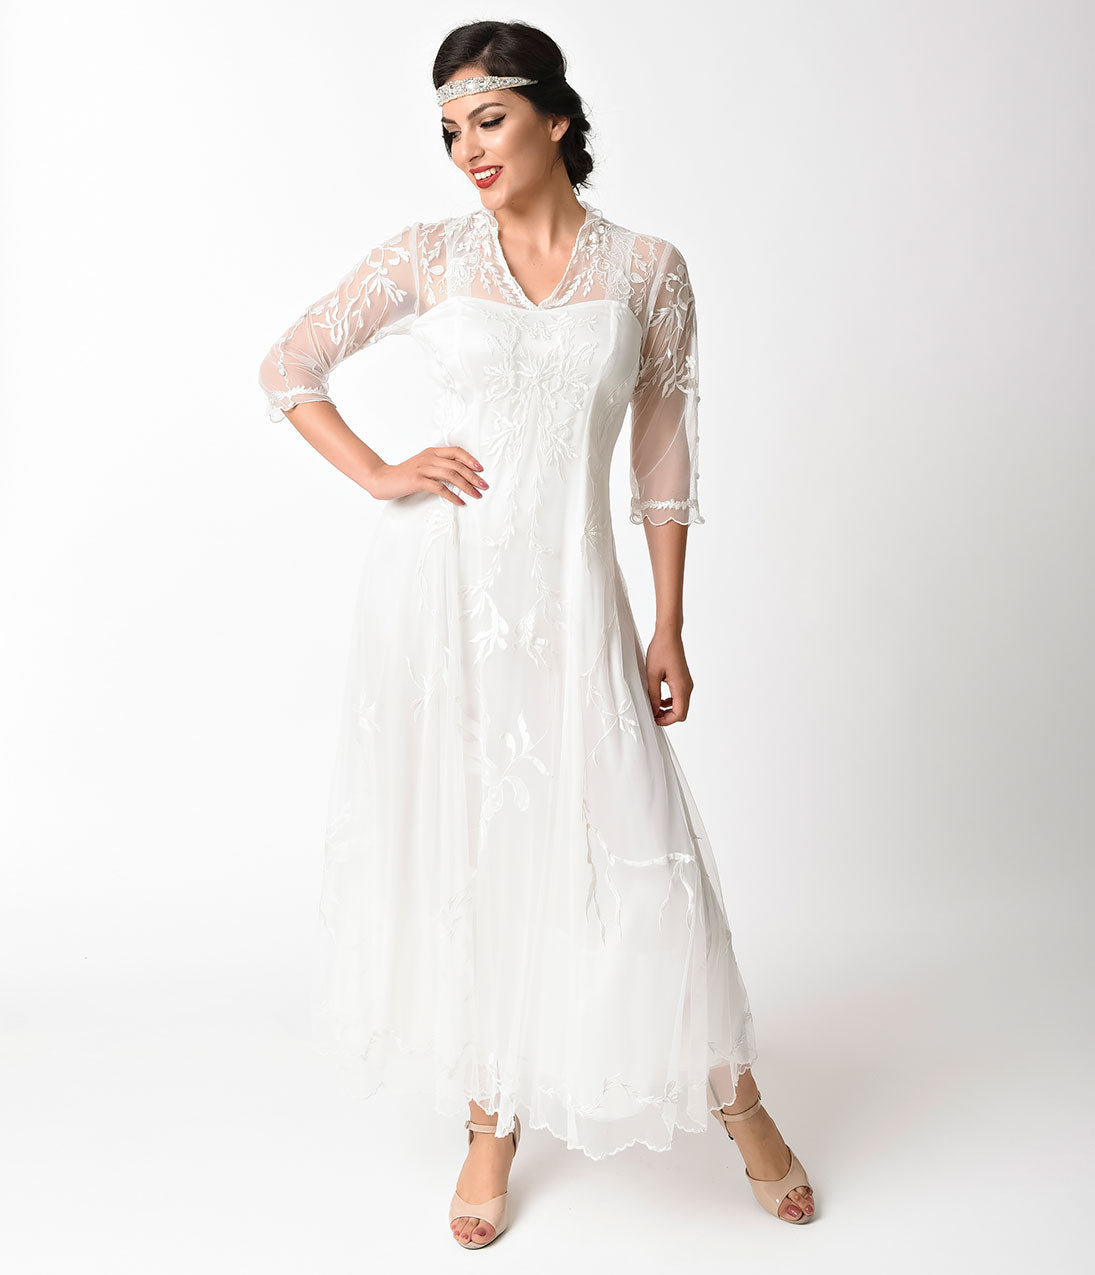 1920s Style Dresses, Flapper Dresses 1930S Vintage Style Ivory Tulle Sleeved Dress $348.00 AT vintagedancer.com